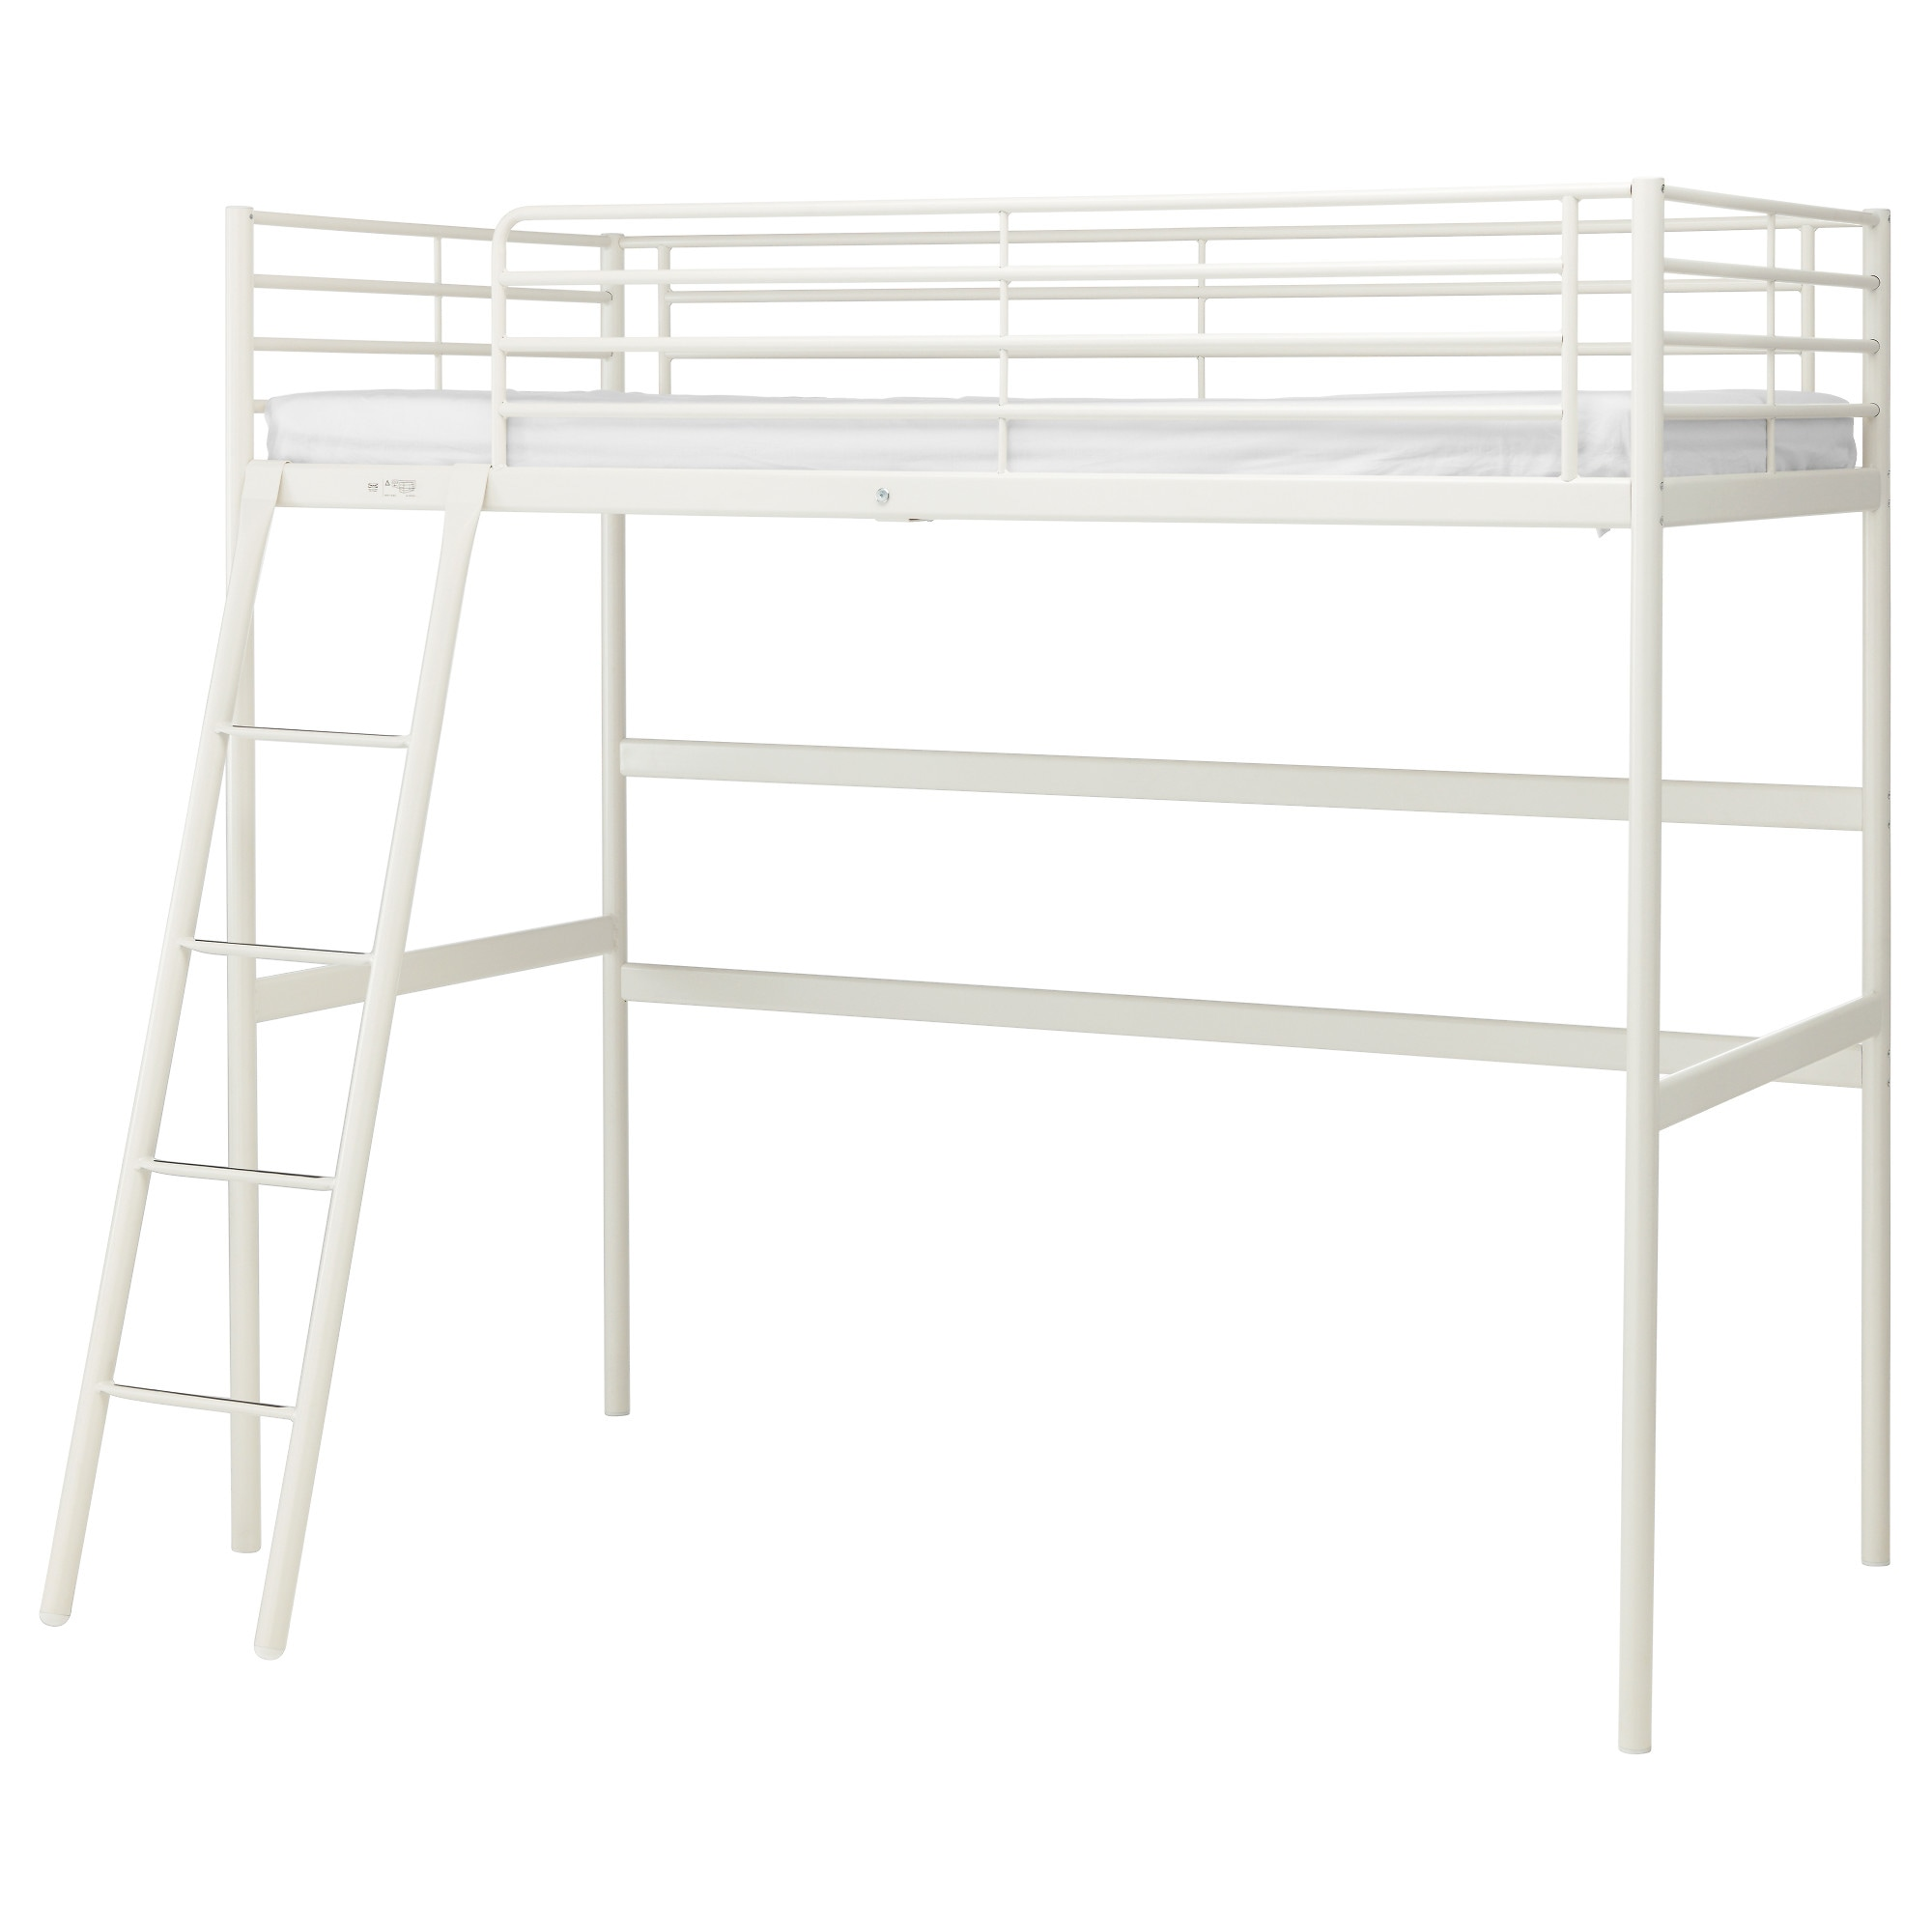 Ikea tuffing review ikea tuffing bunk bed frame youtube for Ikea tuffing review